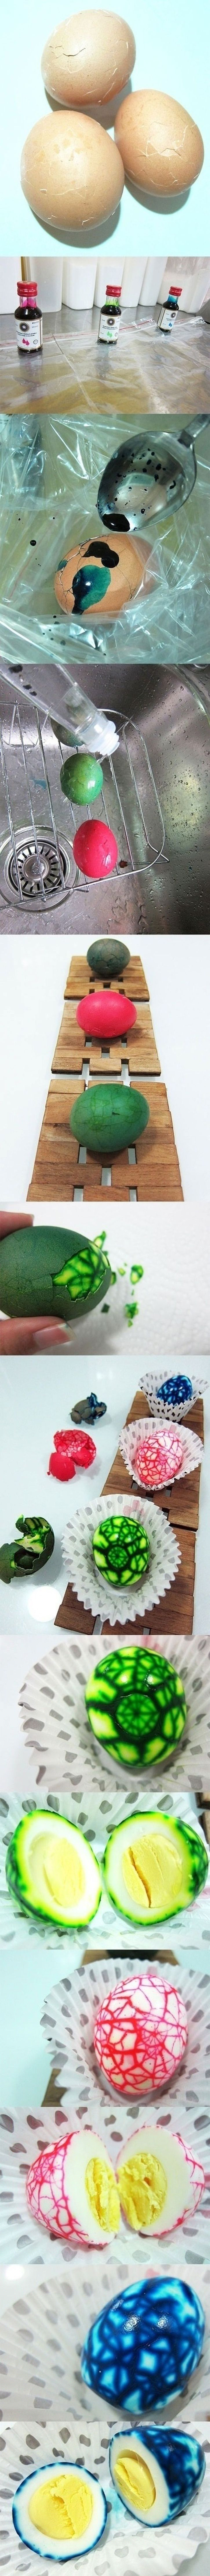 Classic Easter Egg Coloring Method